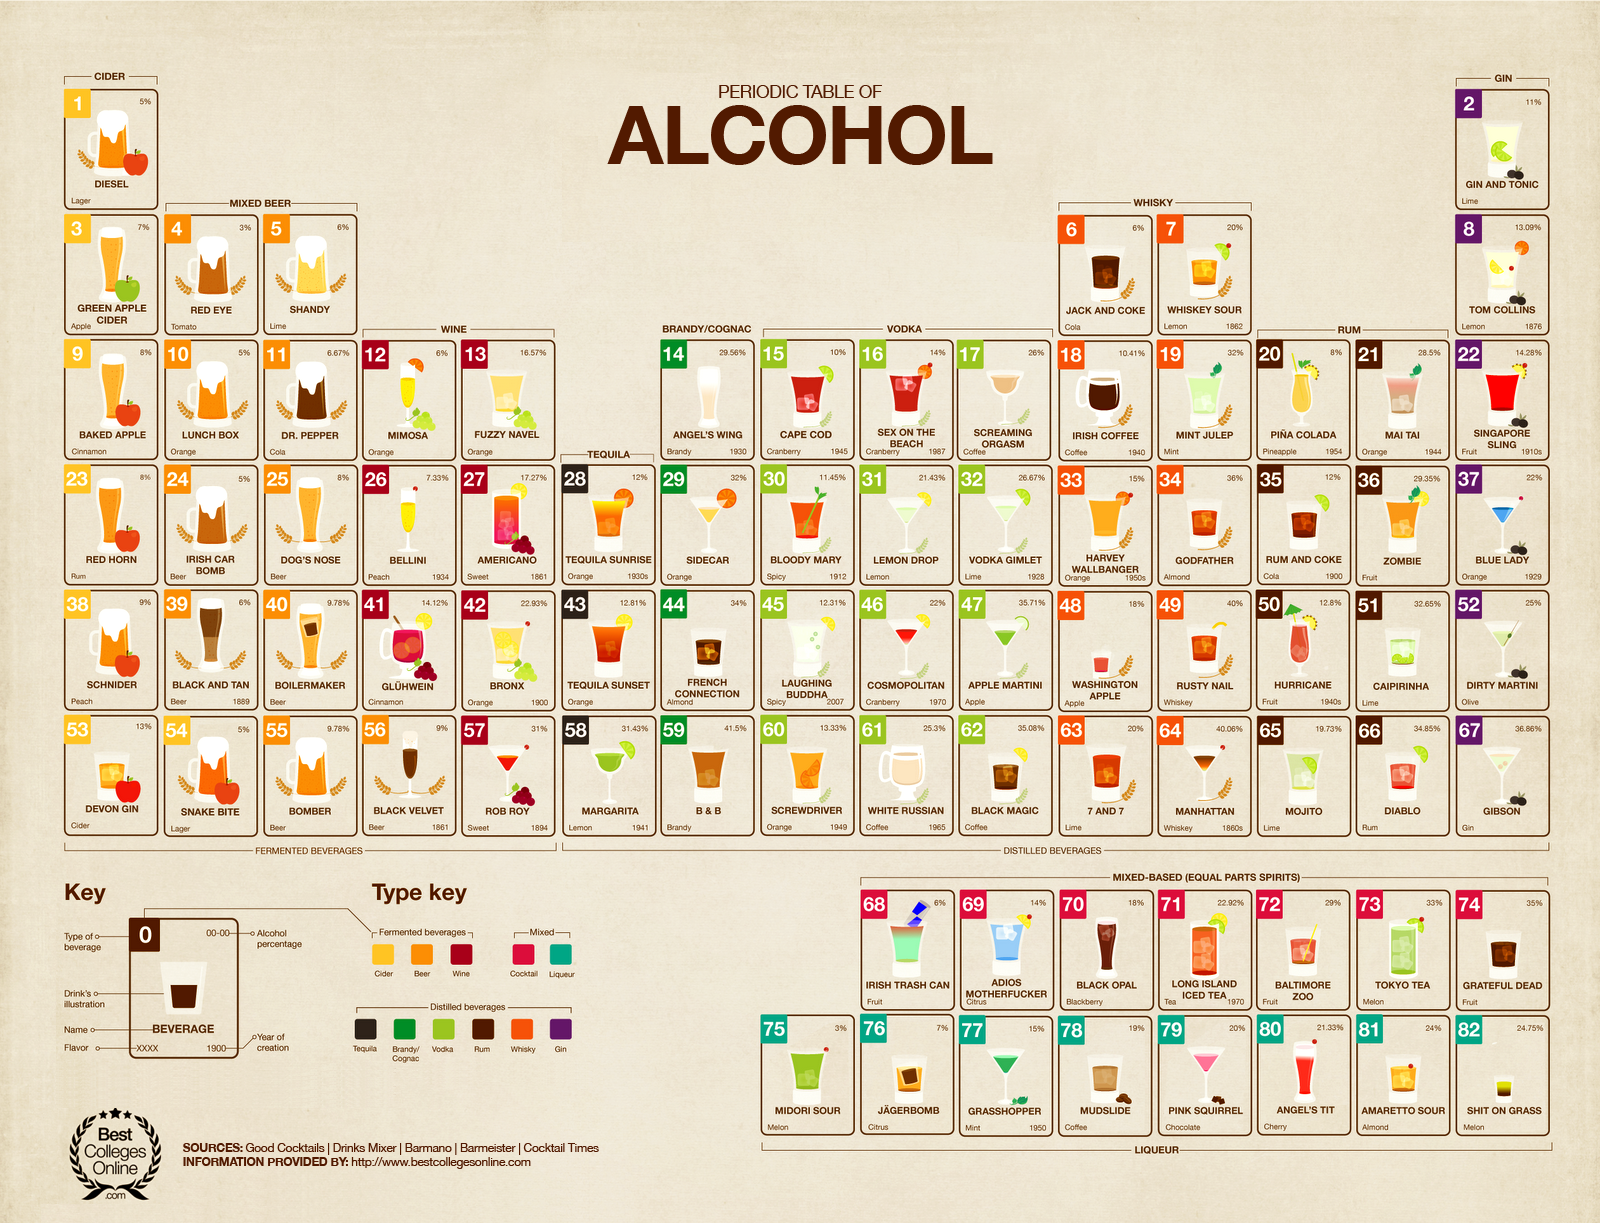 La tabla peridica del alcohol httpvisualperiodic table alcohol urtaz Image collections